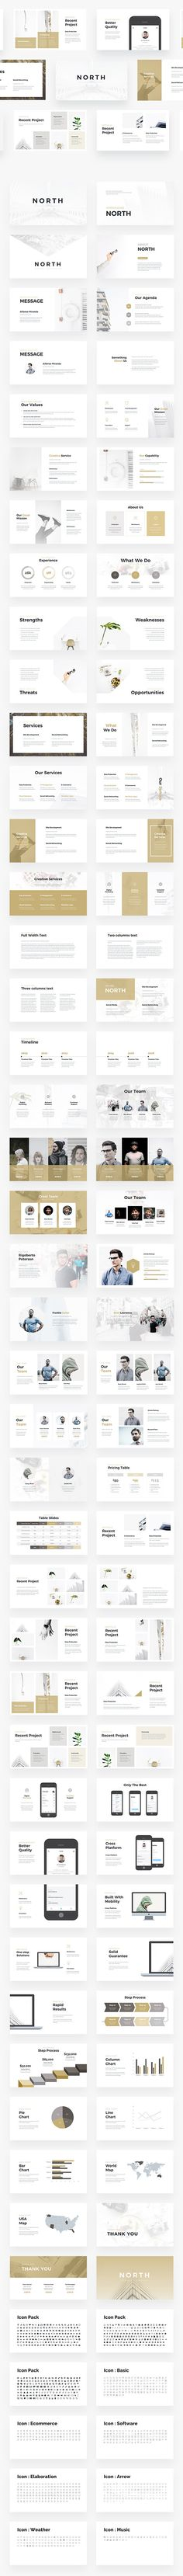 NORTH - Minimal Powerpoint Template